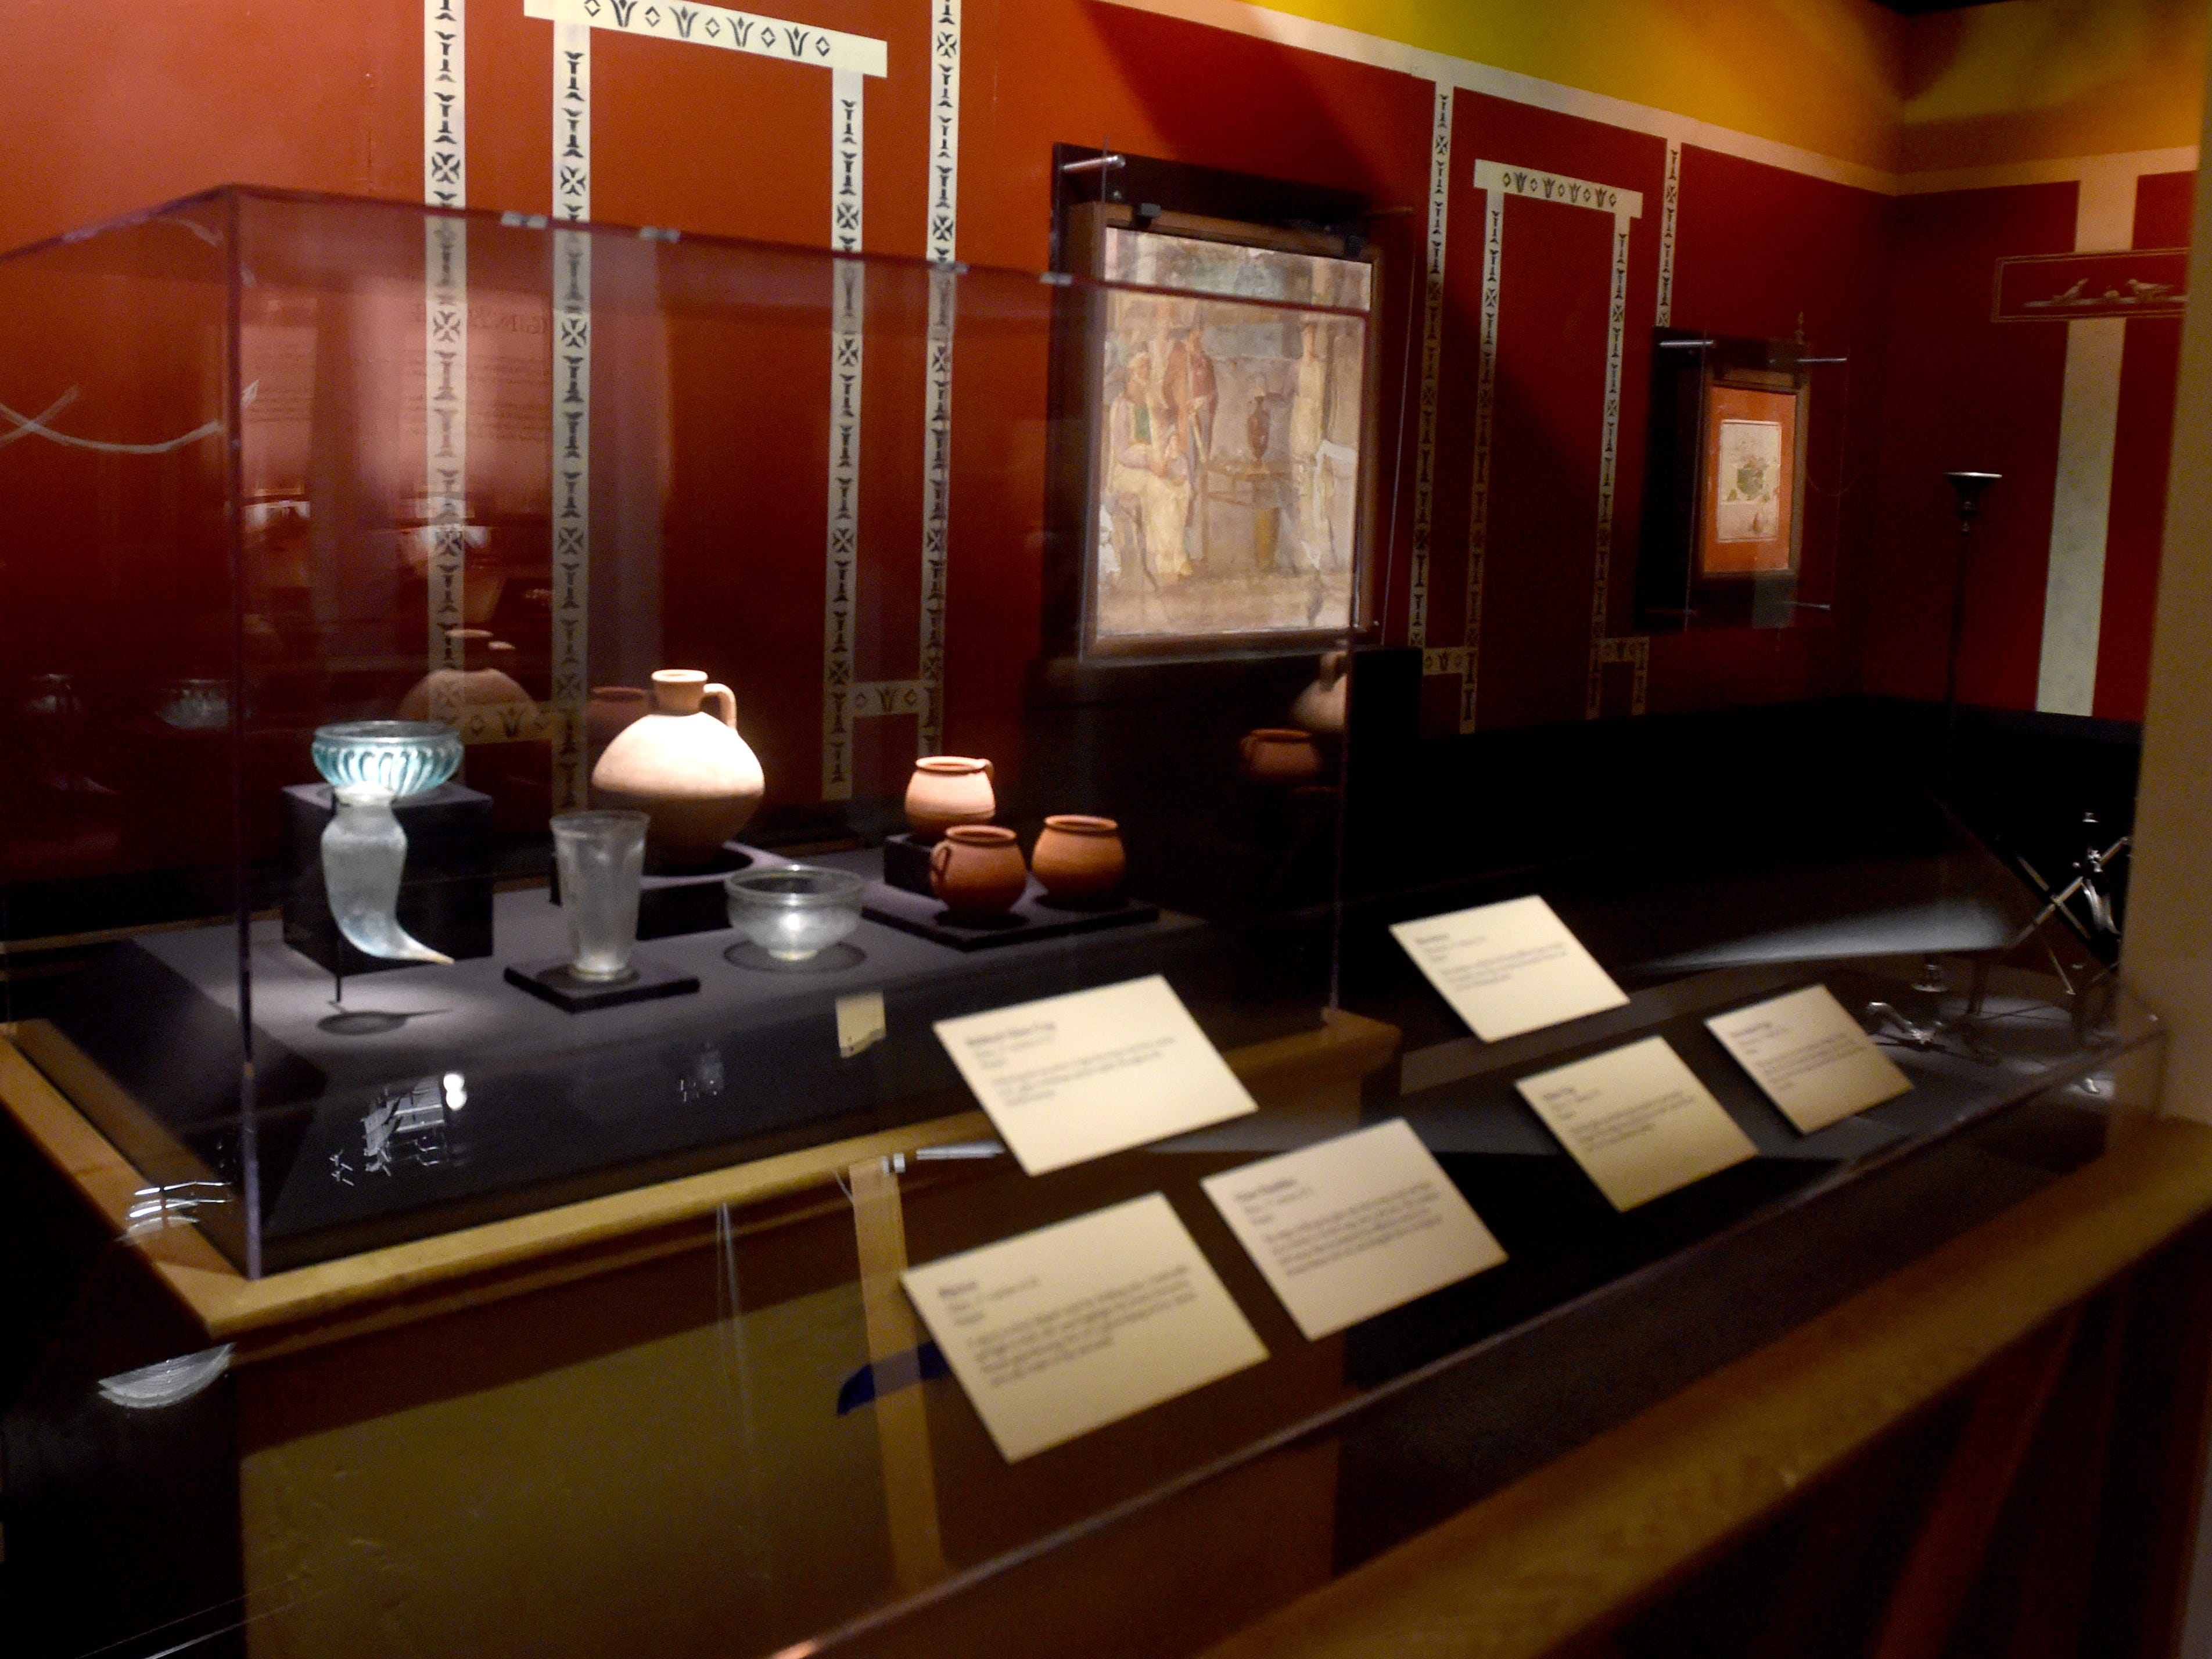 Various examples of ancient dishware are part of the Pompeii exhibit at the Ronald Reagan Presidential Library & Museum in Simi Valley.